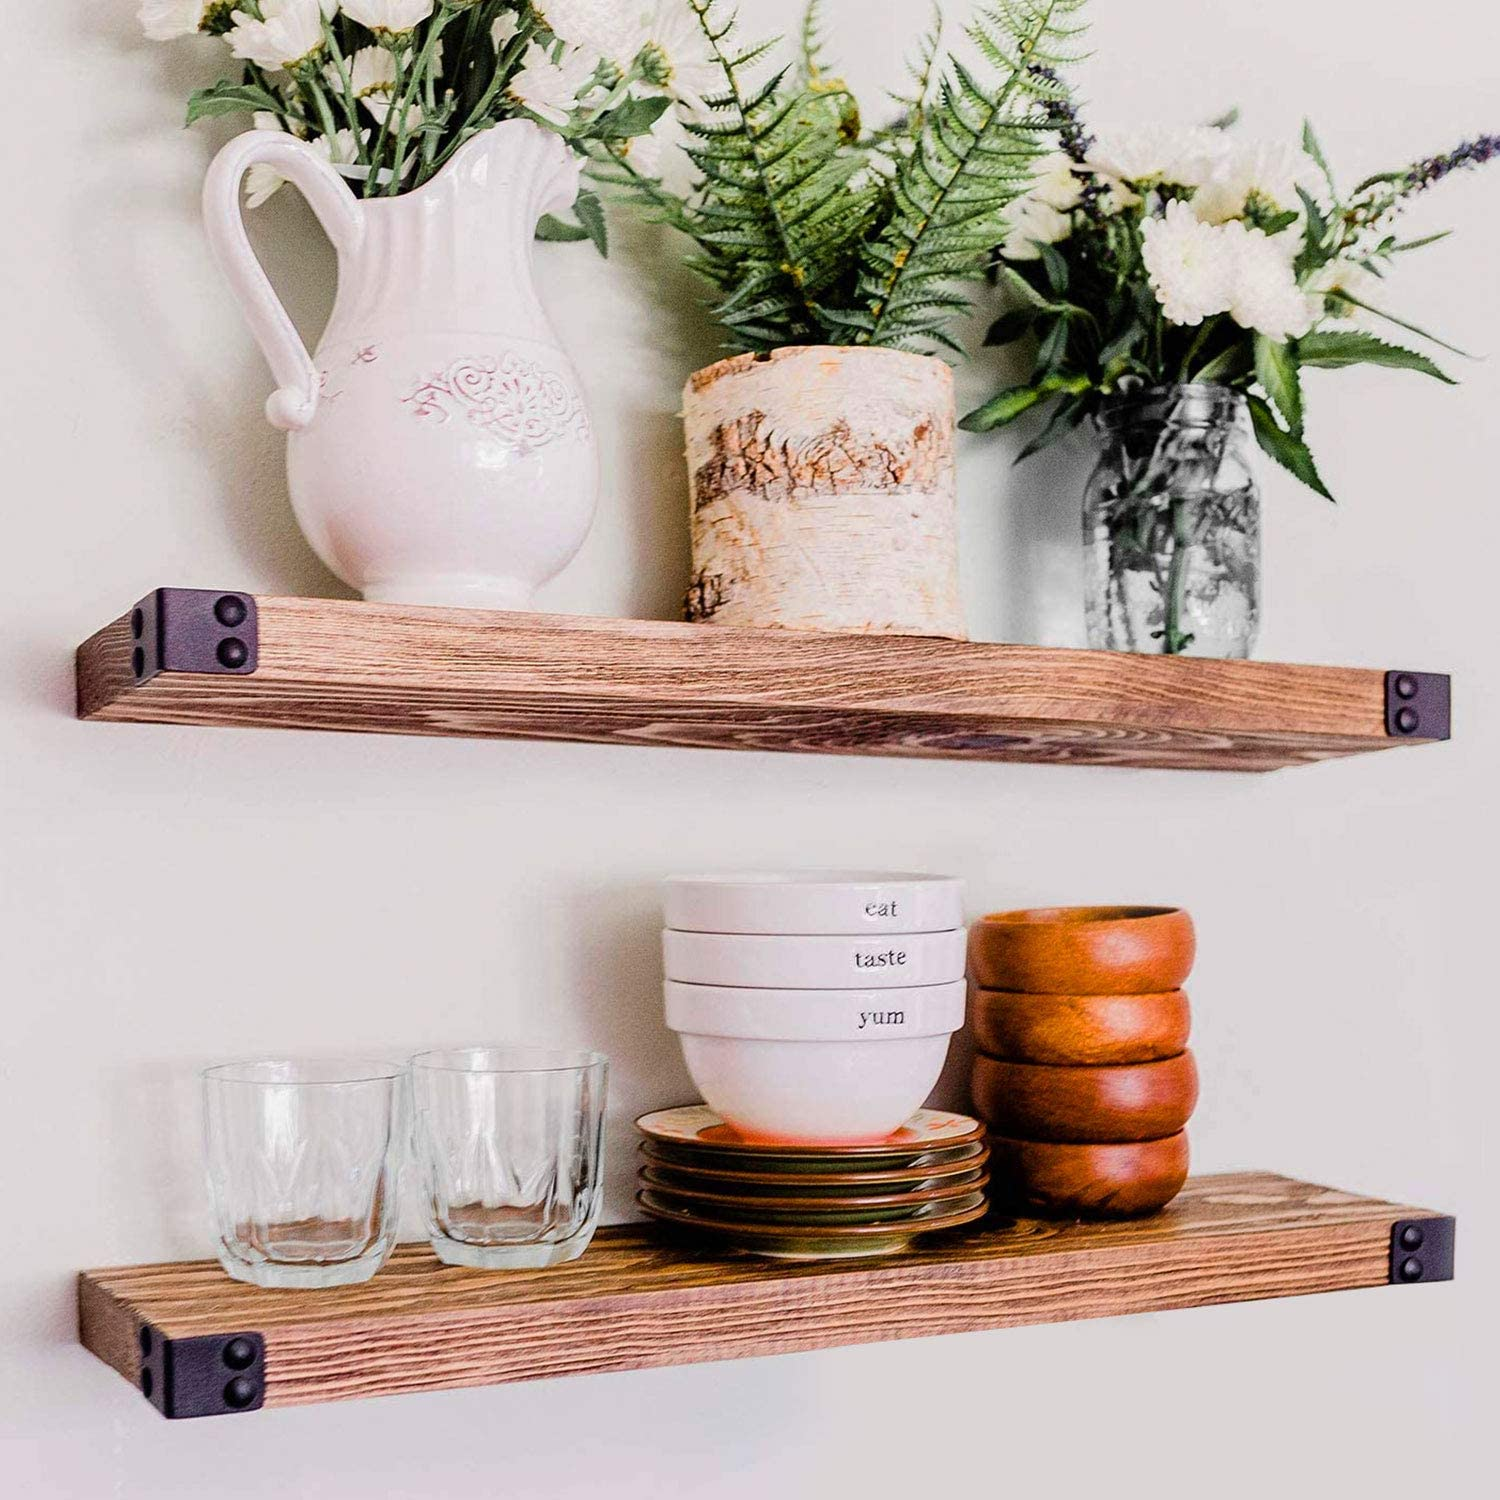 Floating Shelves for Wall Mounted, Modern Rustic All Wood Wall Shelves, Set of 2 for Bedroom, Bathroom, Family Room, Kitchen with Decorative Iron Corners 24 x 6 x 1.5 in